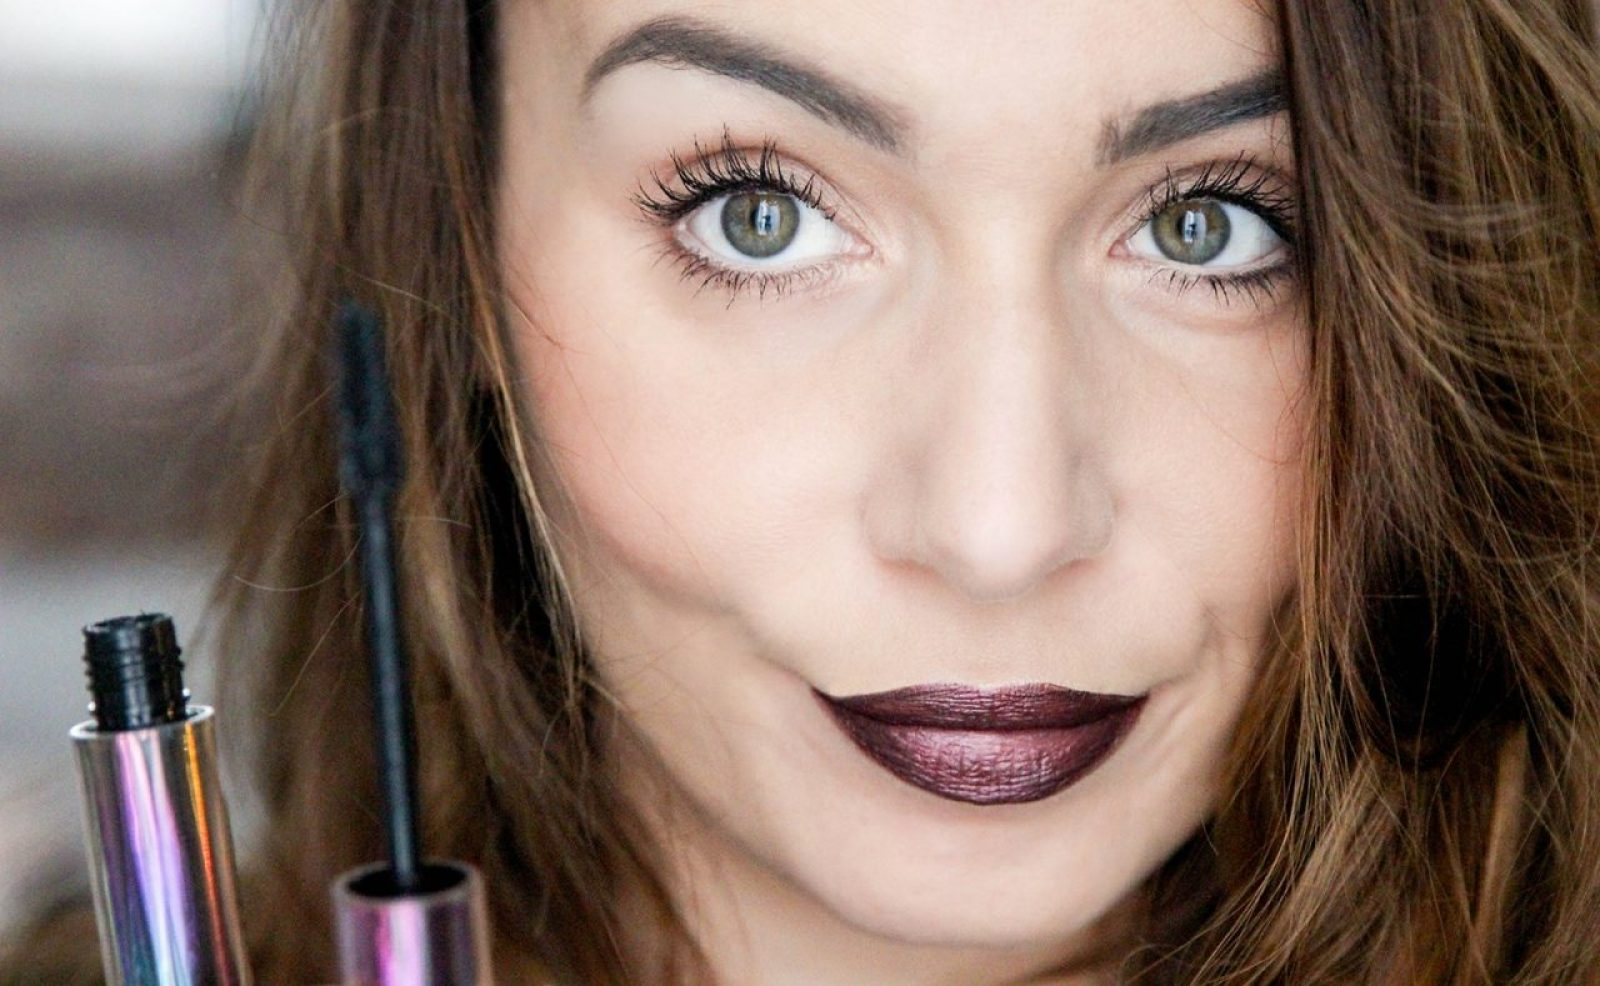 URBAN DECAY Troublemaker Mascara-23